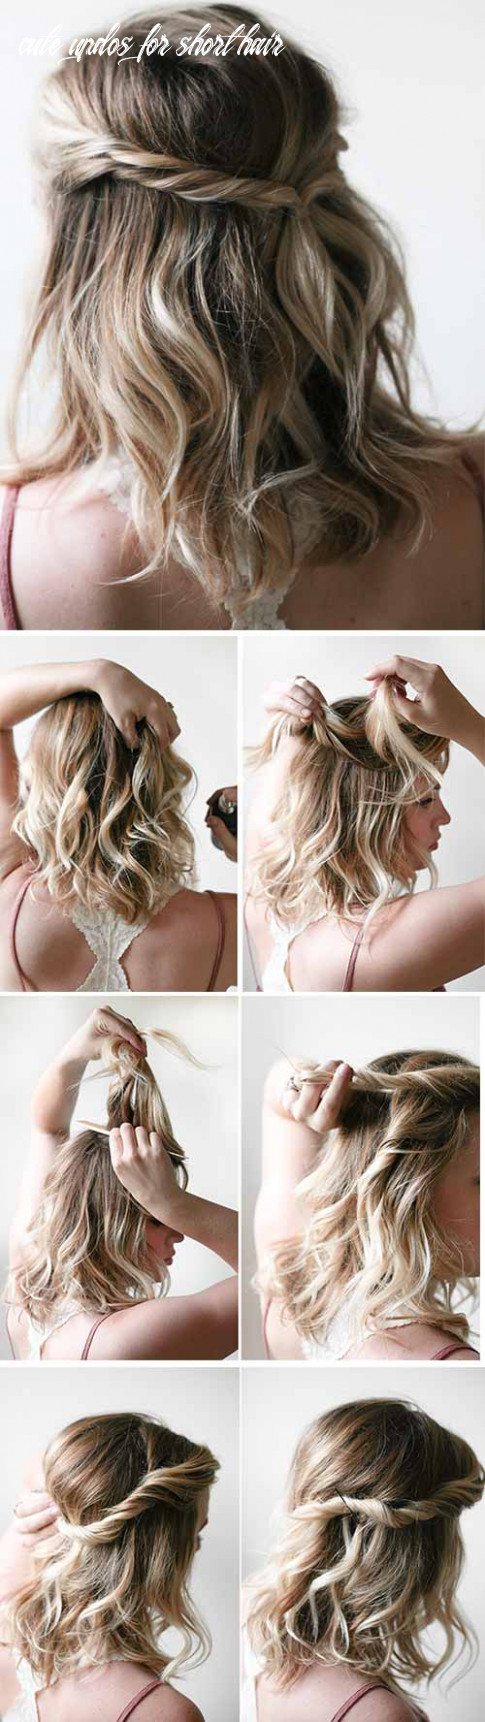 9 Incredible DIY Short Hairstyles - A Step-By-Step Guide